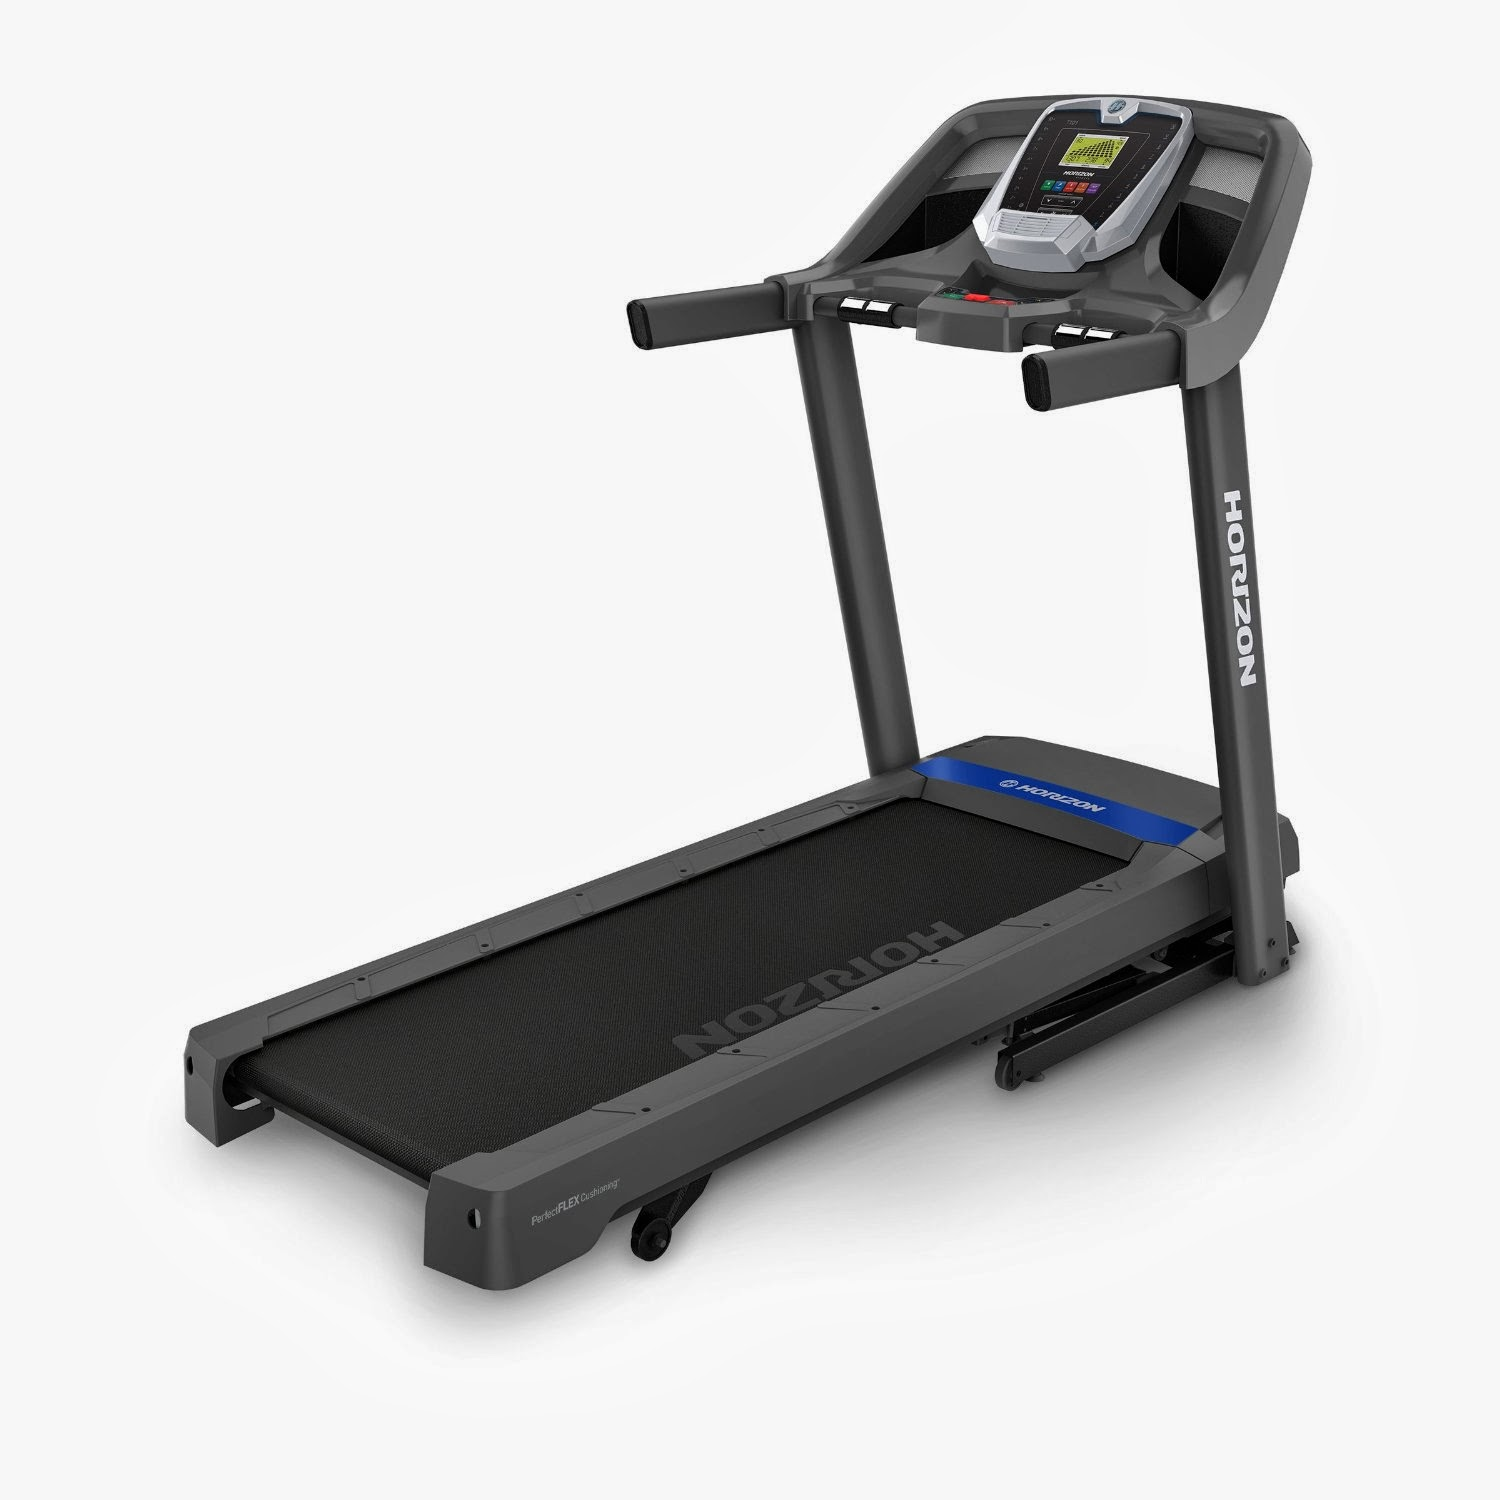 Horizon Fitness T101-04 Treadmill Image